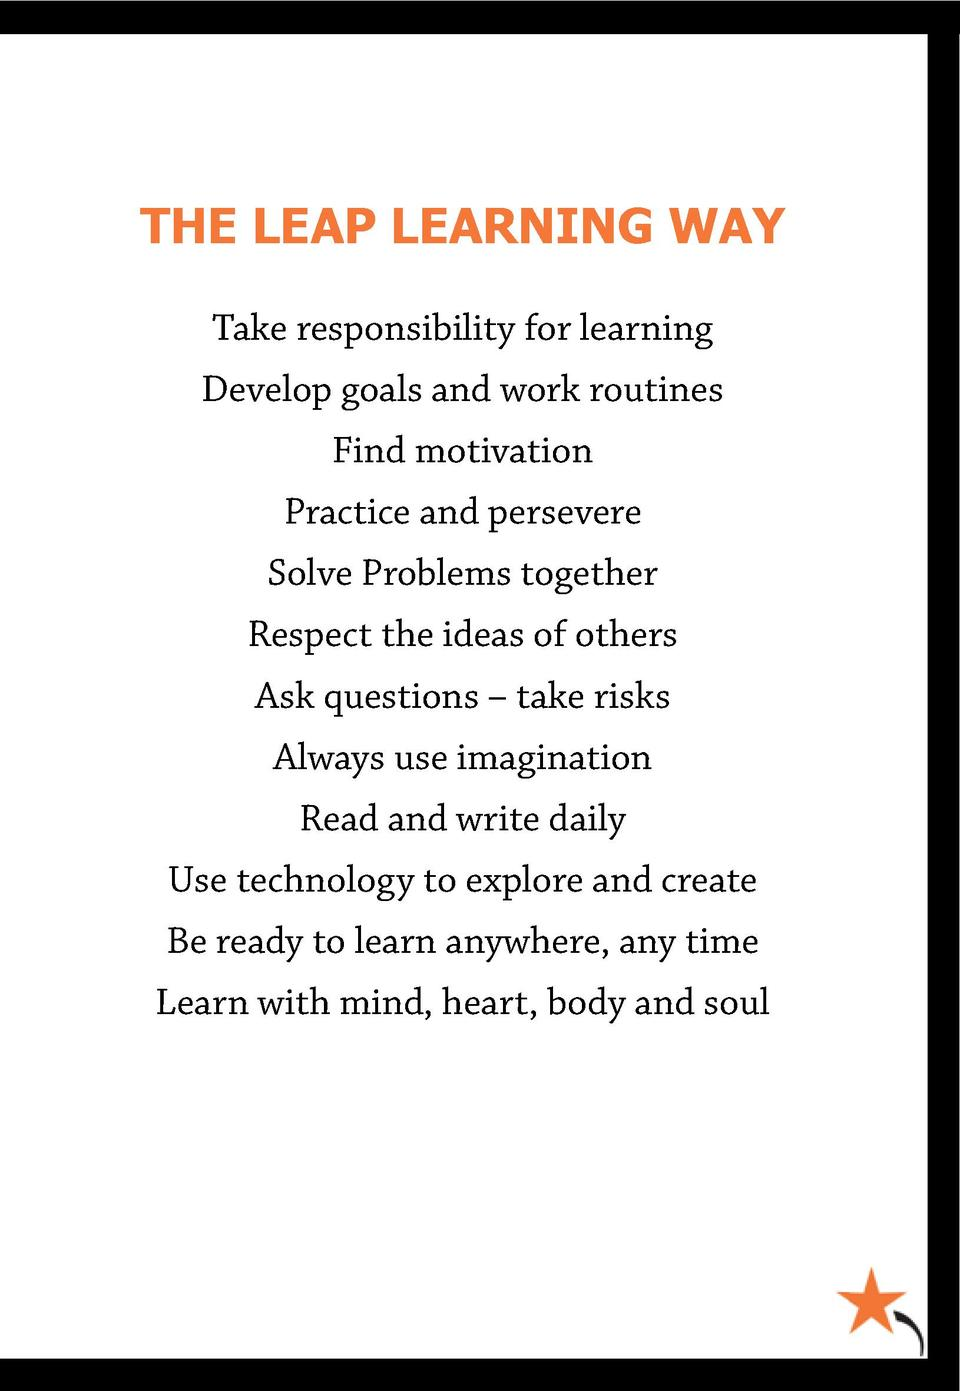 THE LEAP LEARNING WAY Take responsibility for learning Develop goals and work routines Find motivation Practice and persev...